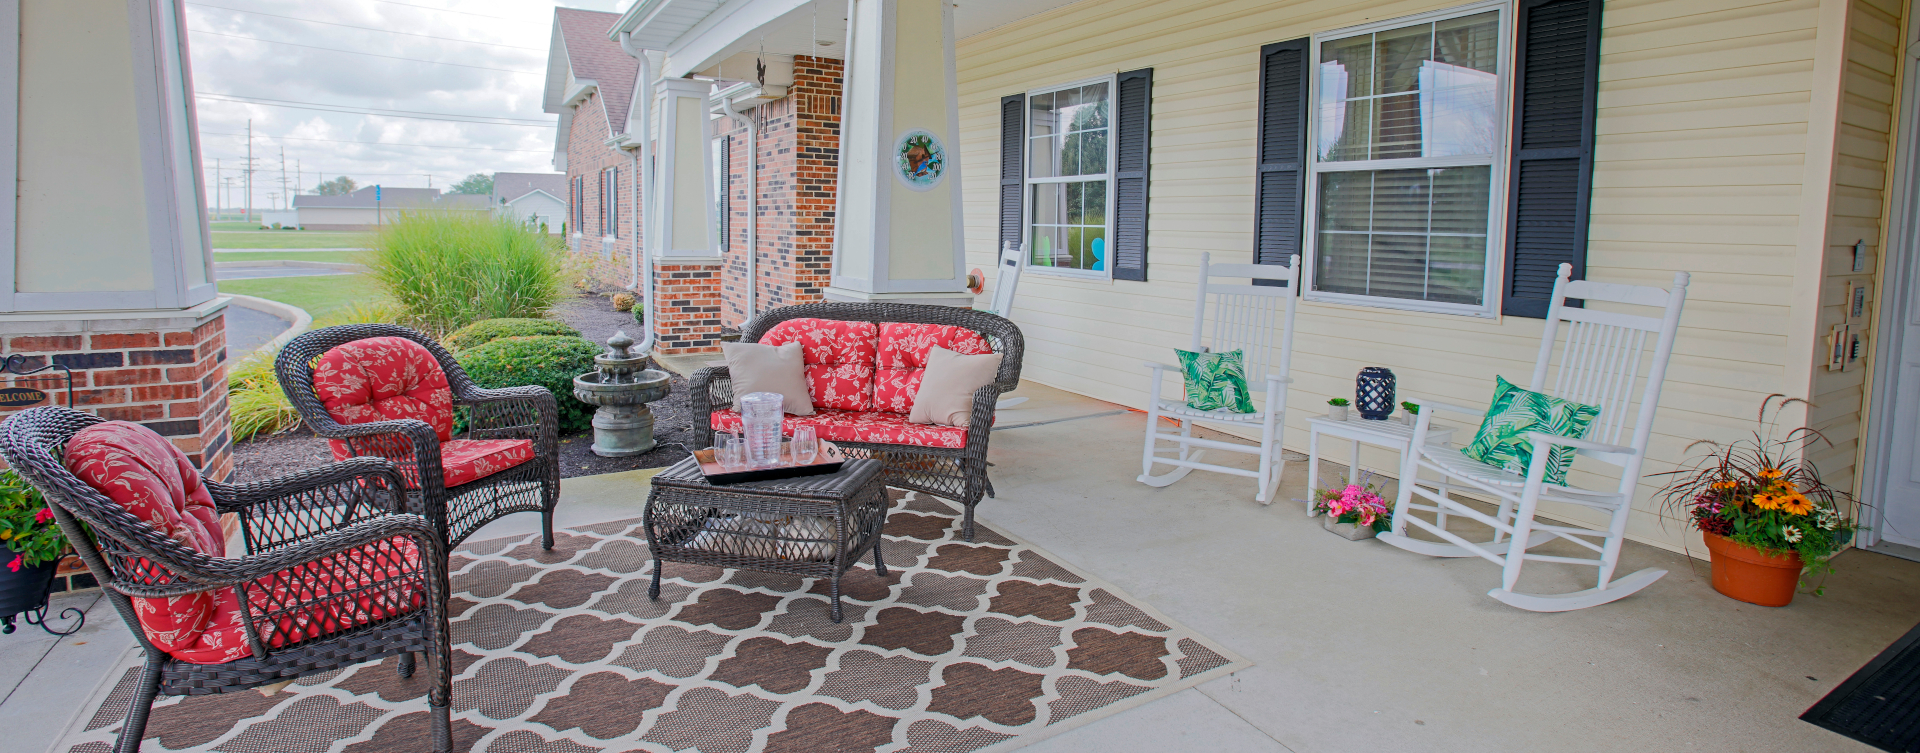 Enjoy conversations with friends on the porch at Bickford of Wabash